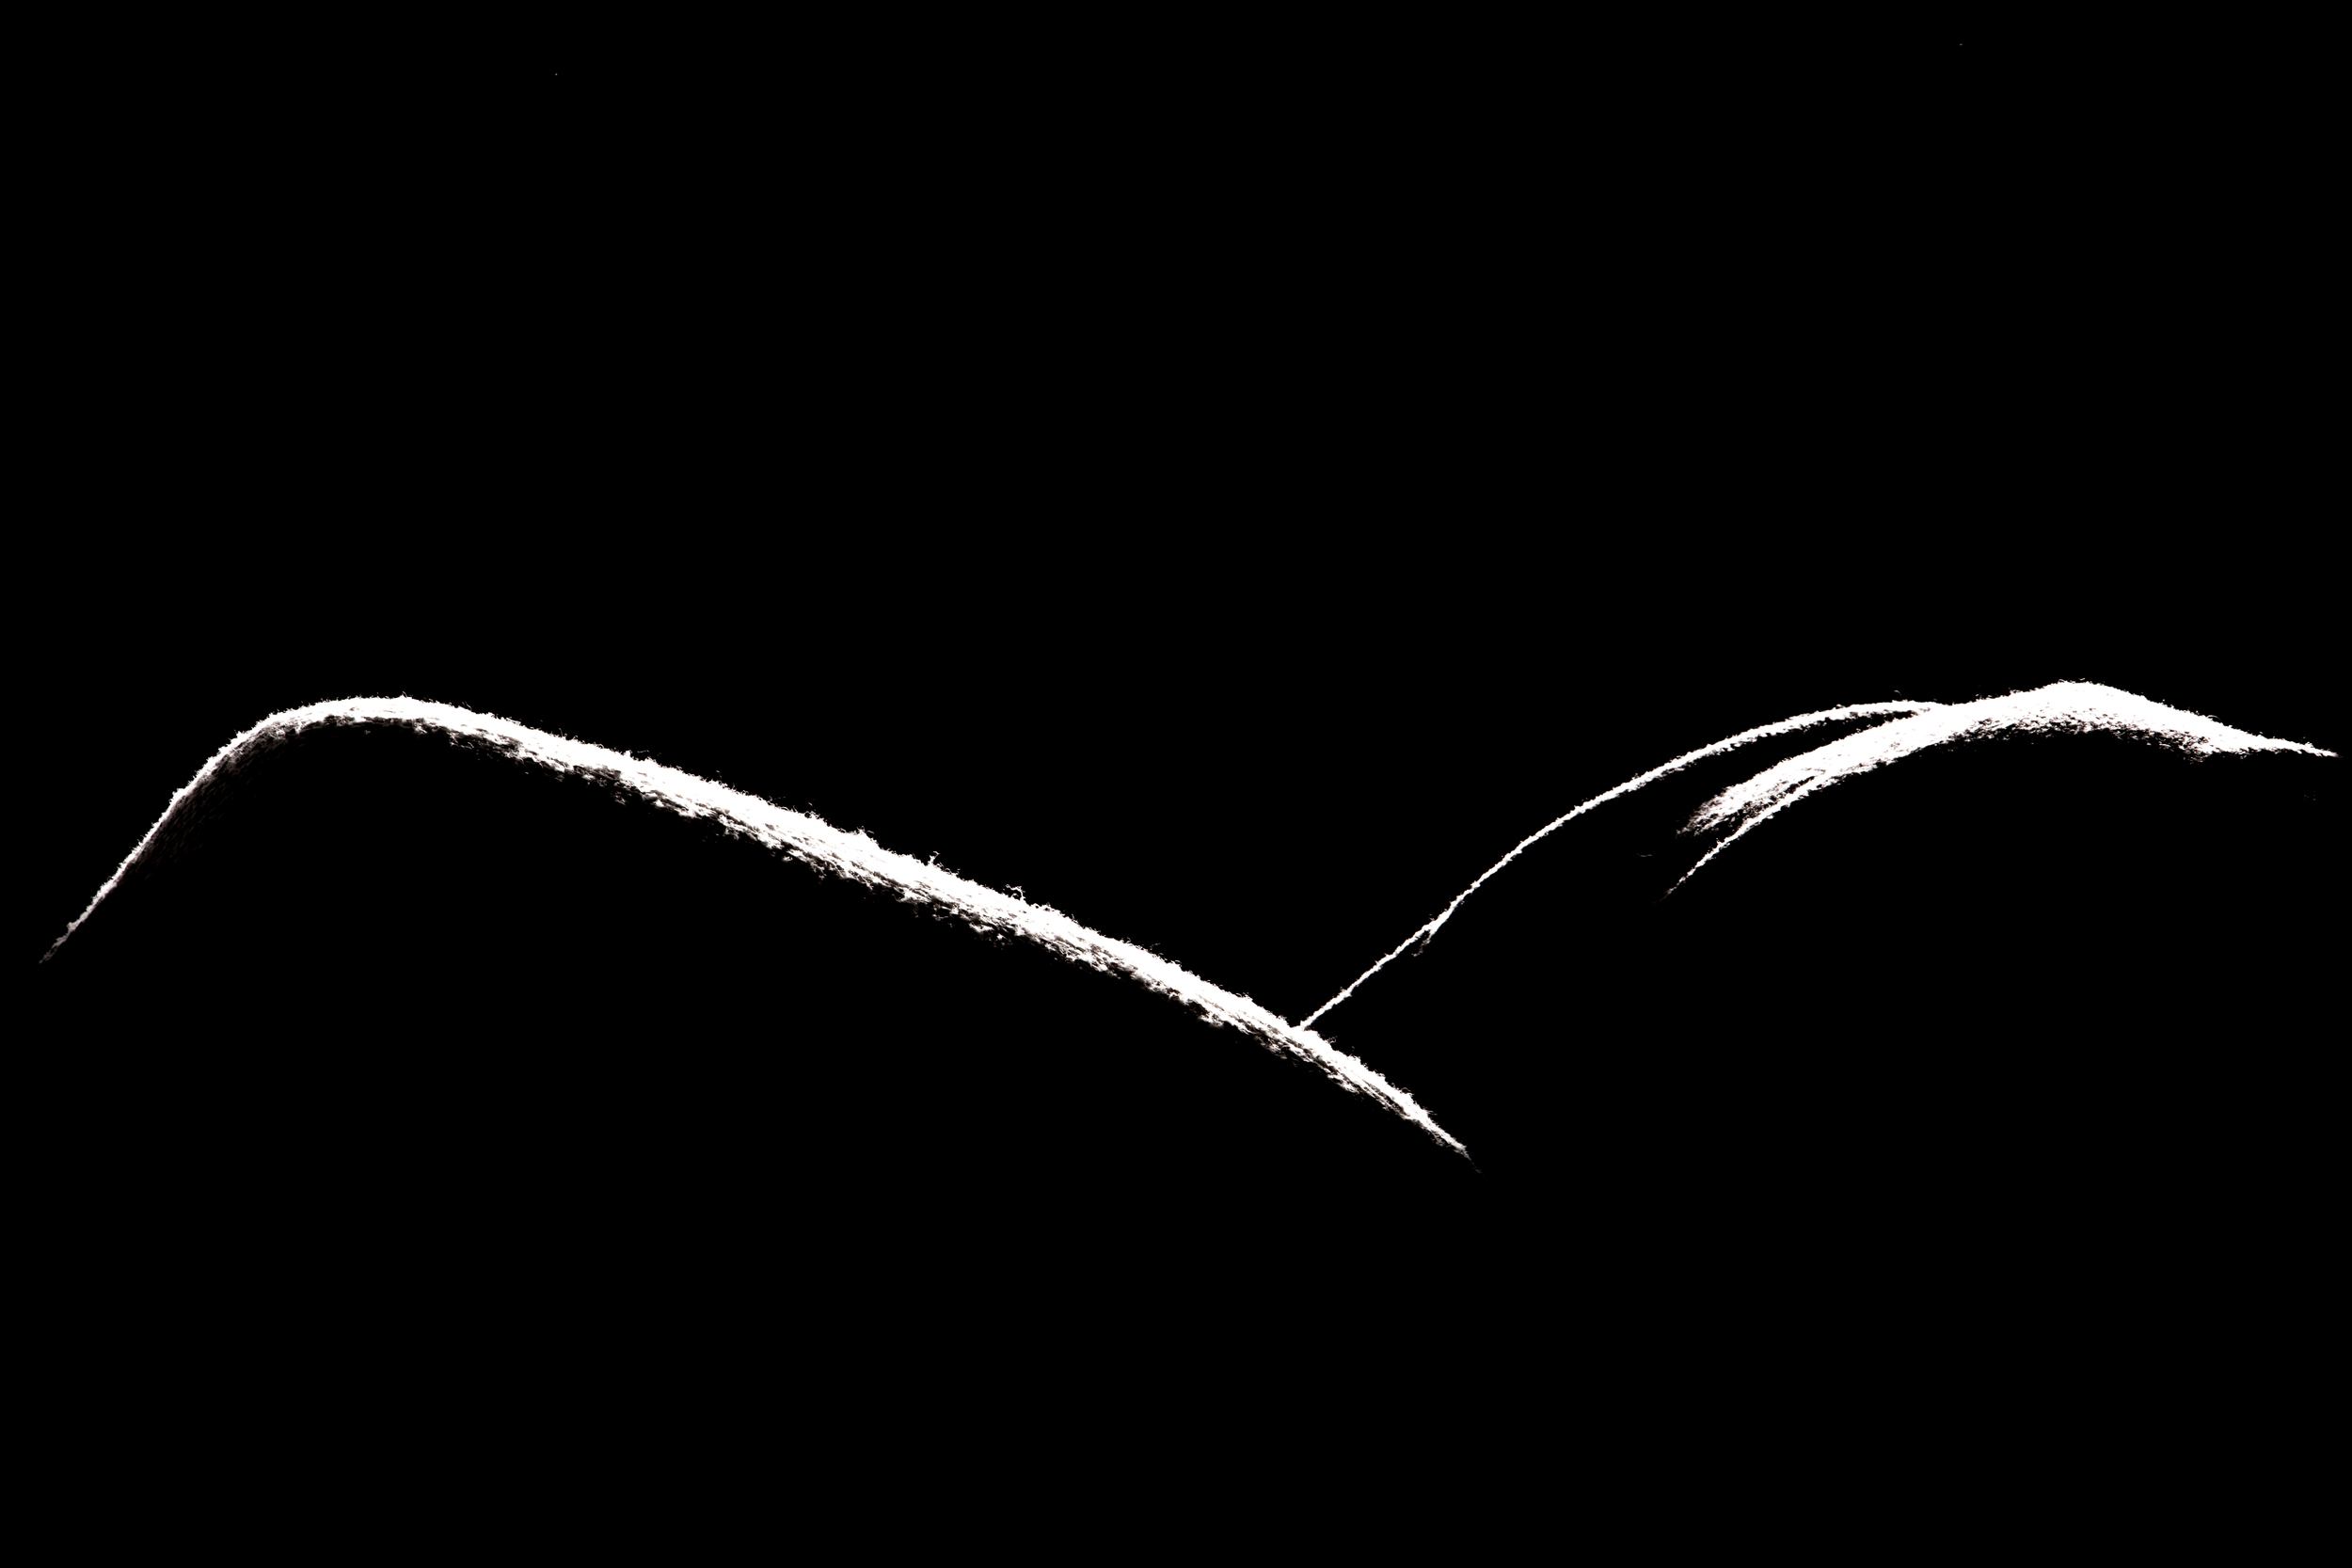 Title: Forme 05 Medium:Archival Pigment Print Dimension: 20 × 30 in (50.8 cm × 76.2 cm) Edition: 1 of 2, with 1 AP